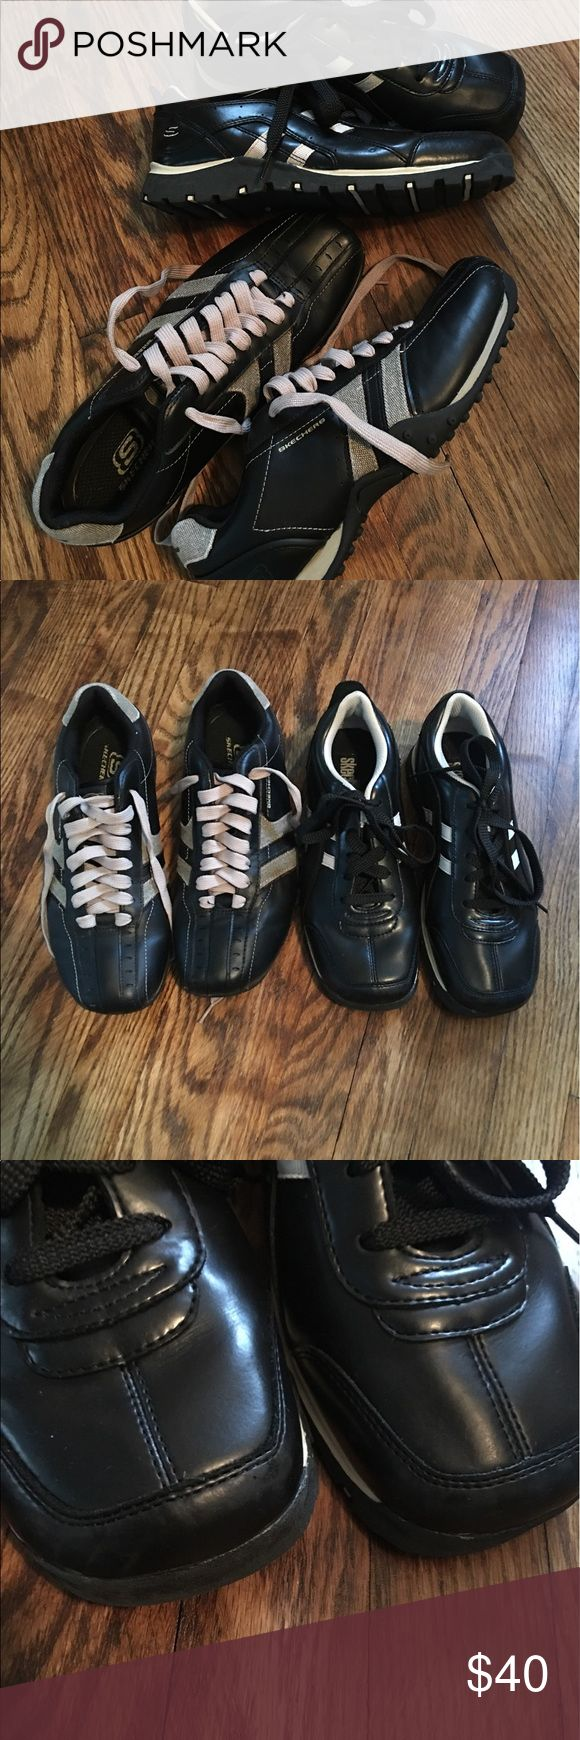 Casual Skechers EUC men's causal wear Skechers. These are in excellent condition! Only sign of wear is on the far right pair. Some very small scuff on the toe of each shoe as pictured. Soles show no wear! Great way for two pair of quality shoes for a good price! Skechers Shoes Sneakers